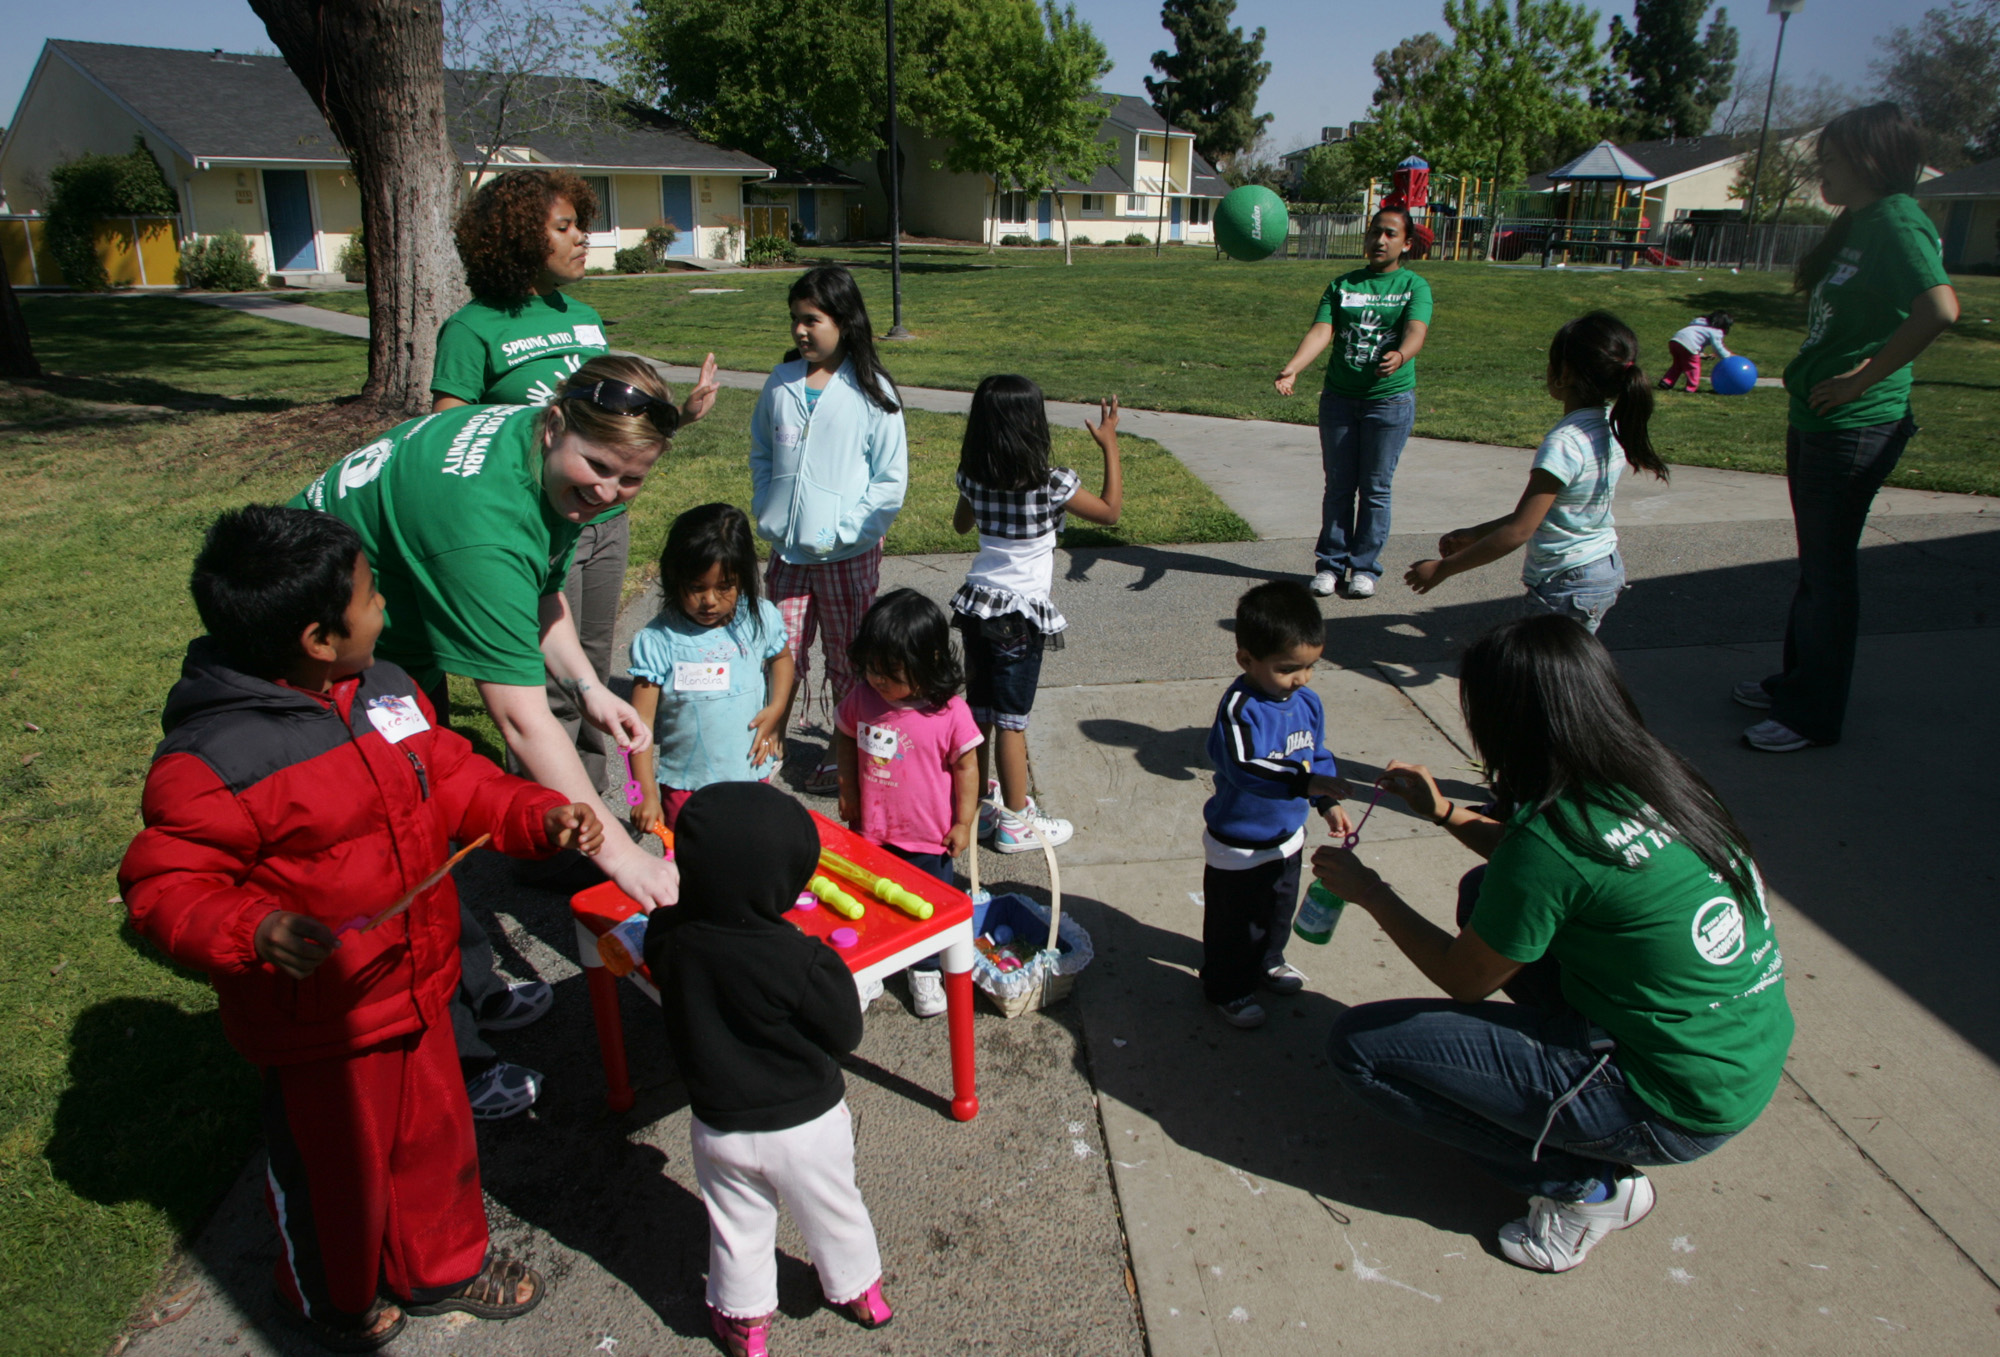 Fresno State students, green T-shirts, play with a group of children at Bigby Villa Apartments in Fresno, California on March 27.